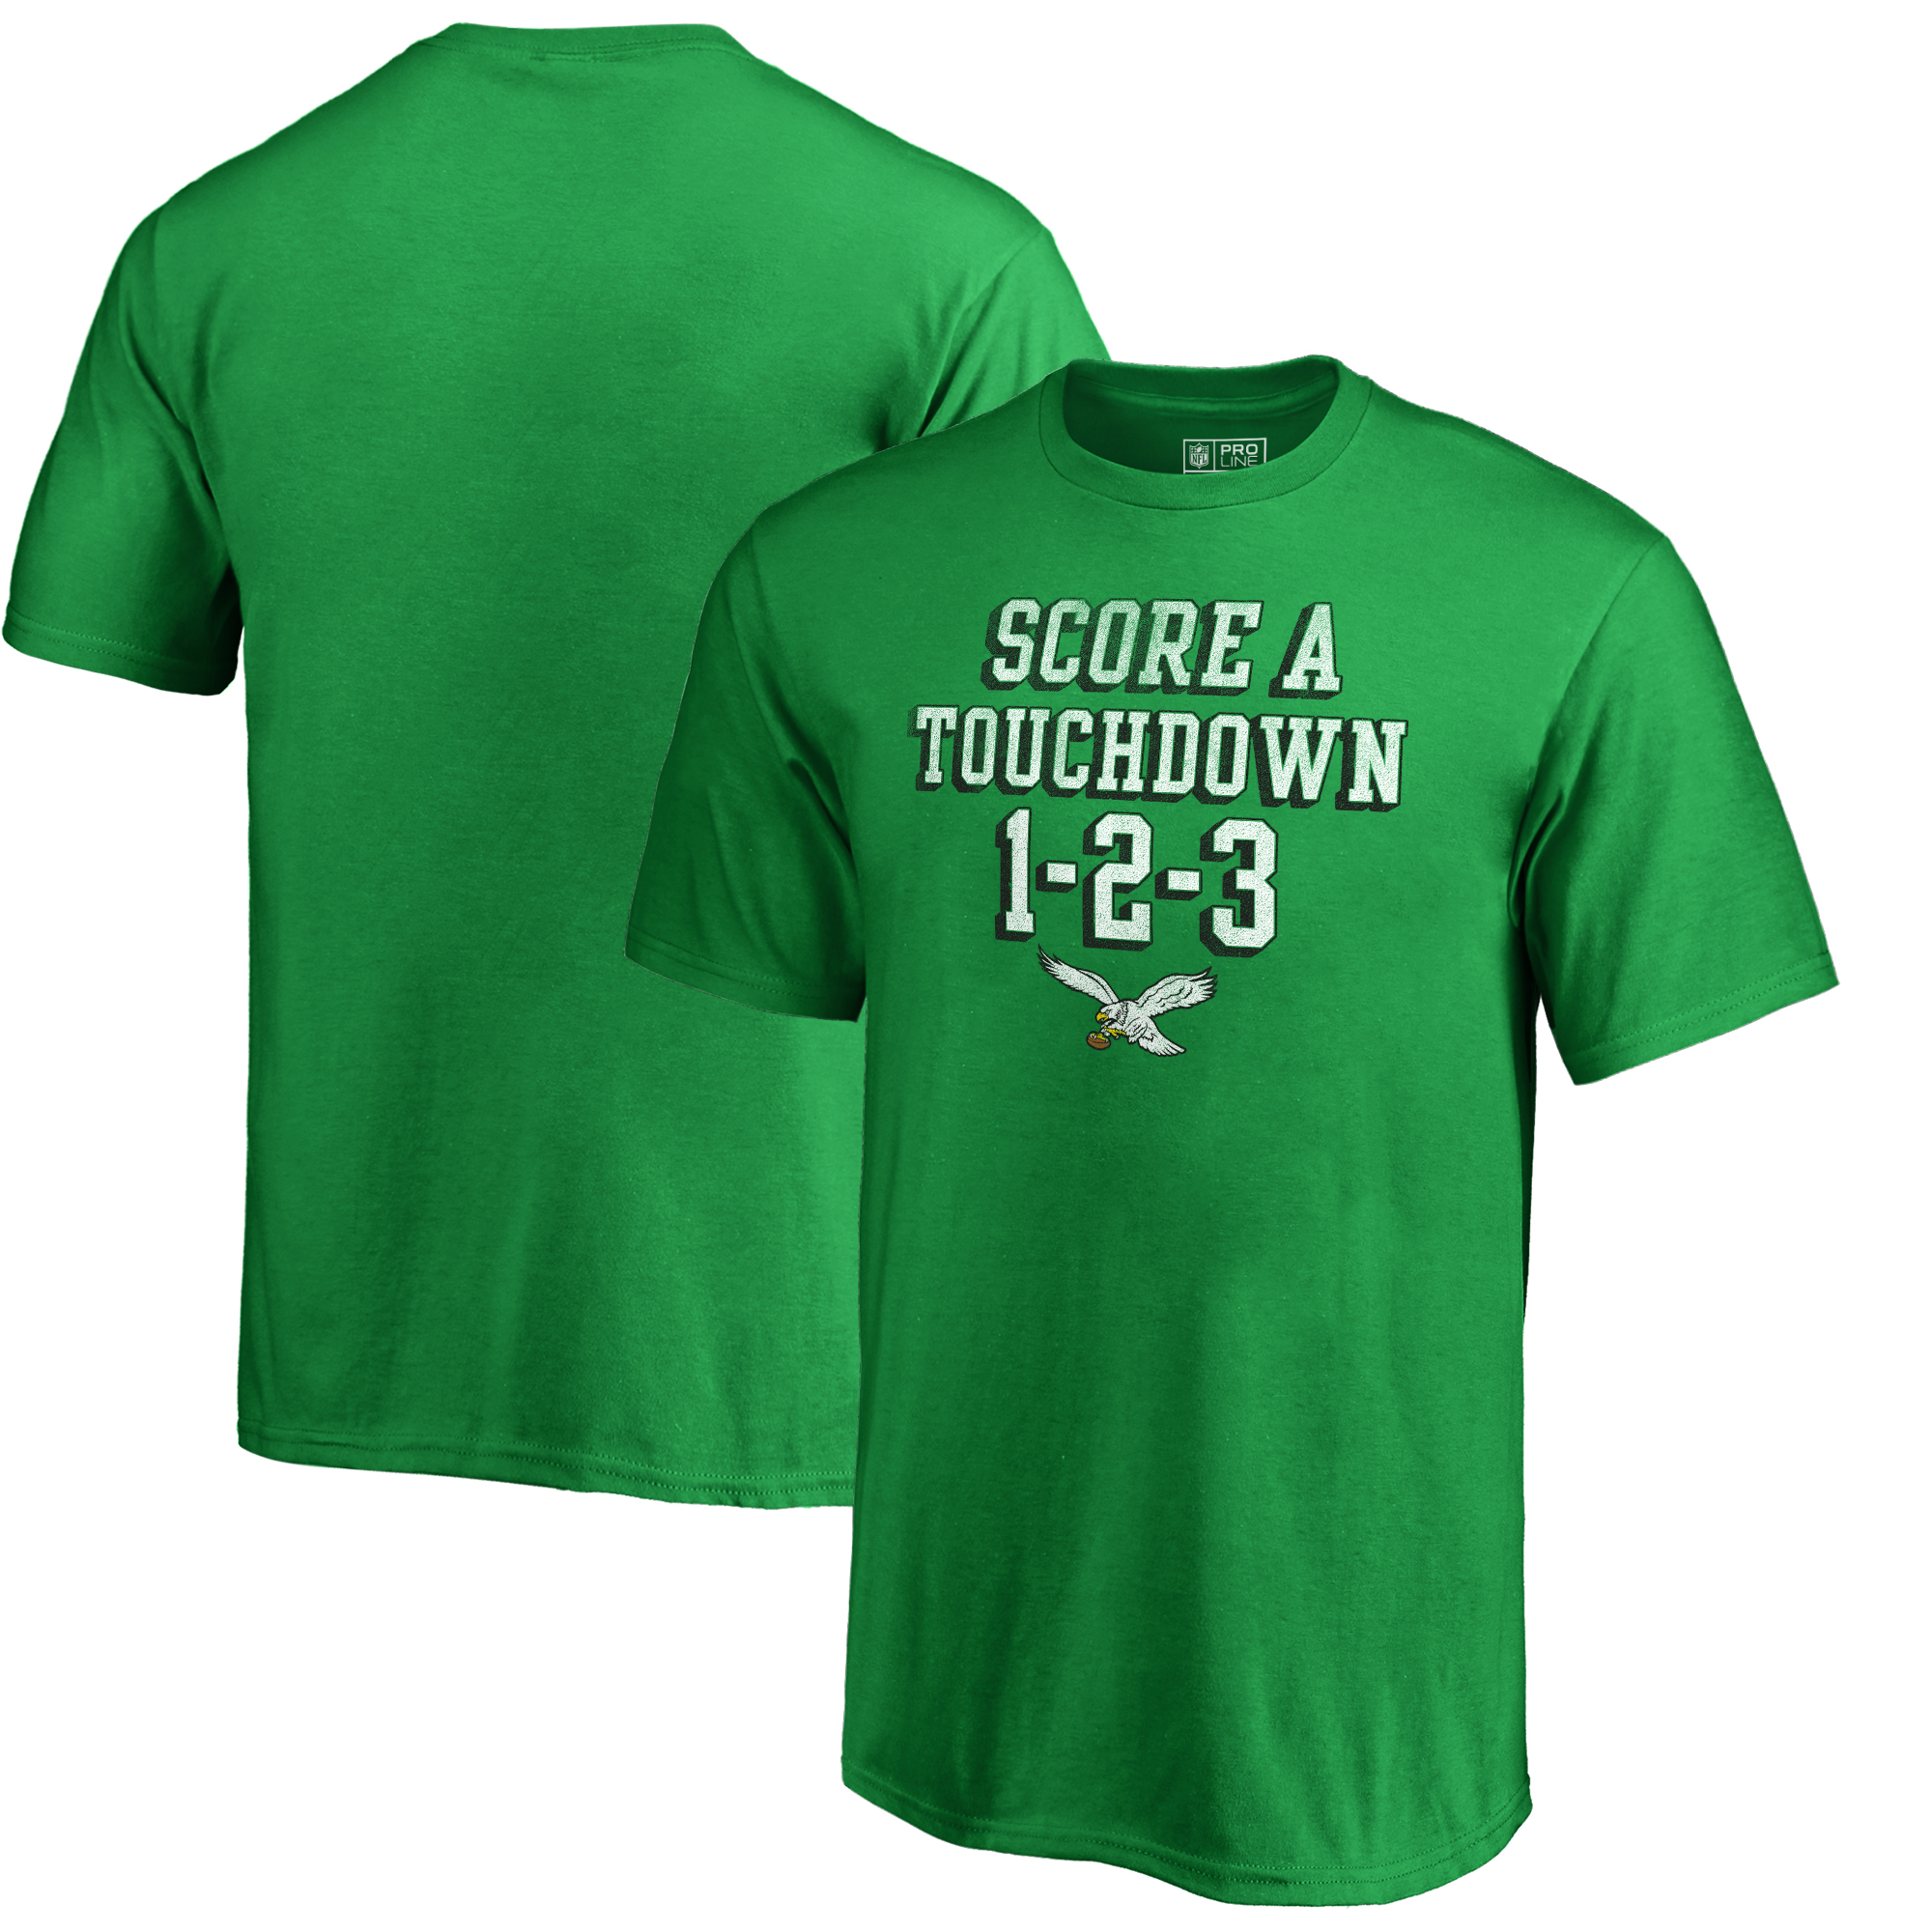 Philadelphia Eagles NFL Pro Line by Fanatics Branded Youth Hometown Collection TD 1-2-3 T-Shirt - Kelly Green